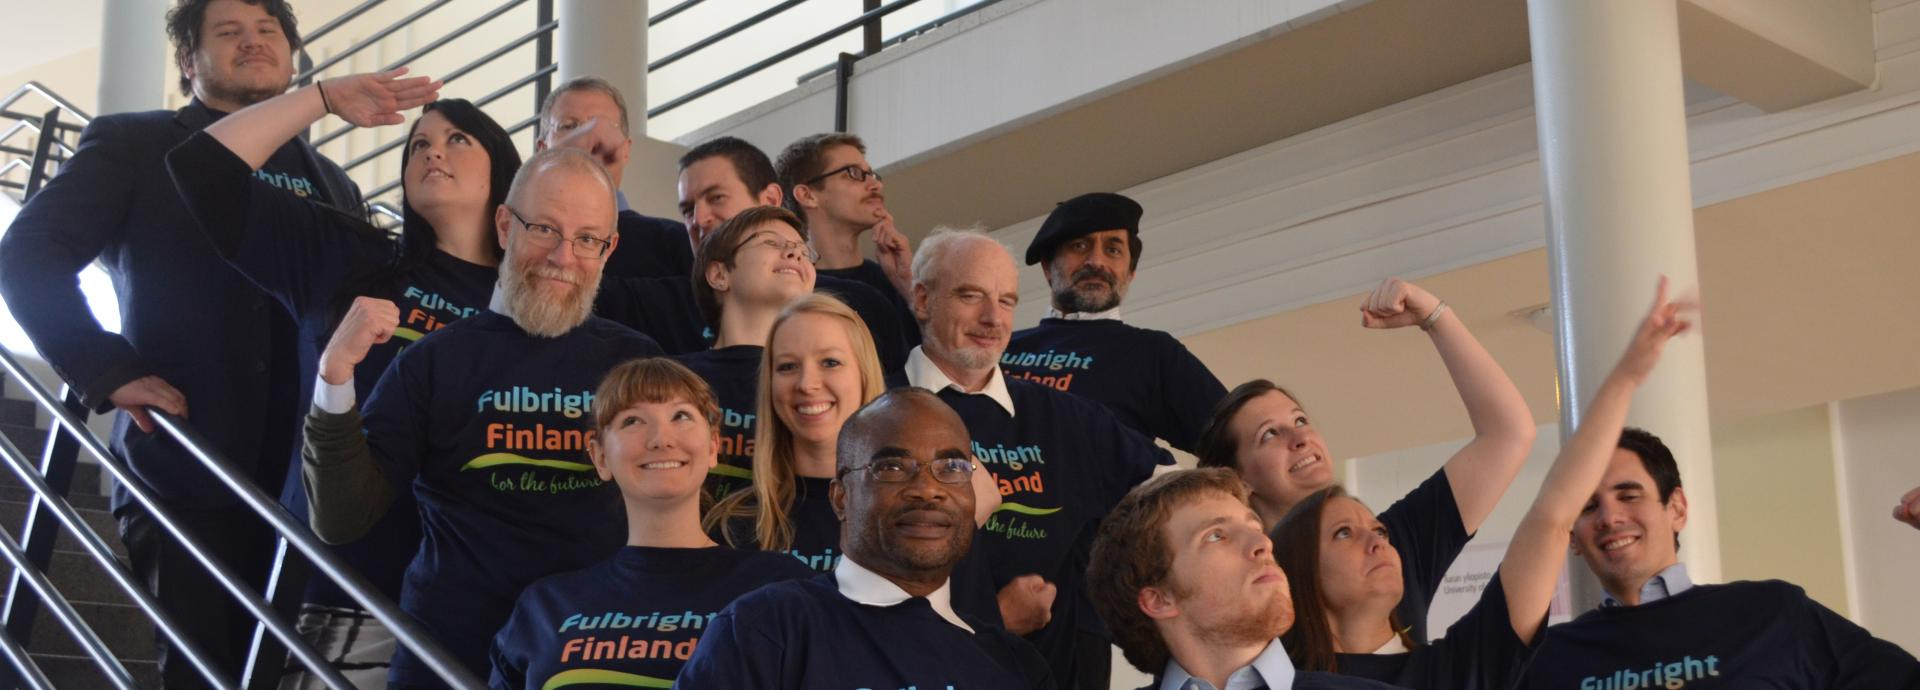 Group of American Fulbrighters wearing Fulbright Finland t-shirts on a staircase making superhero-like moves